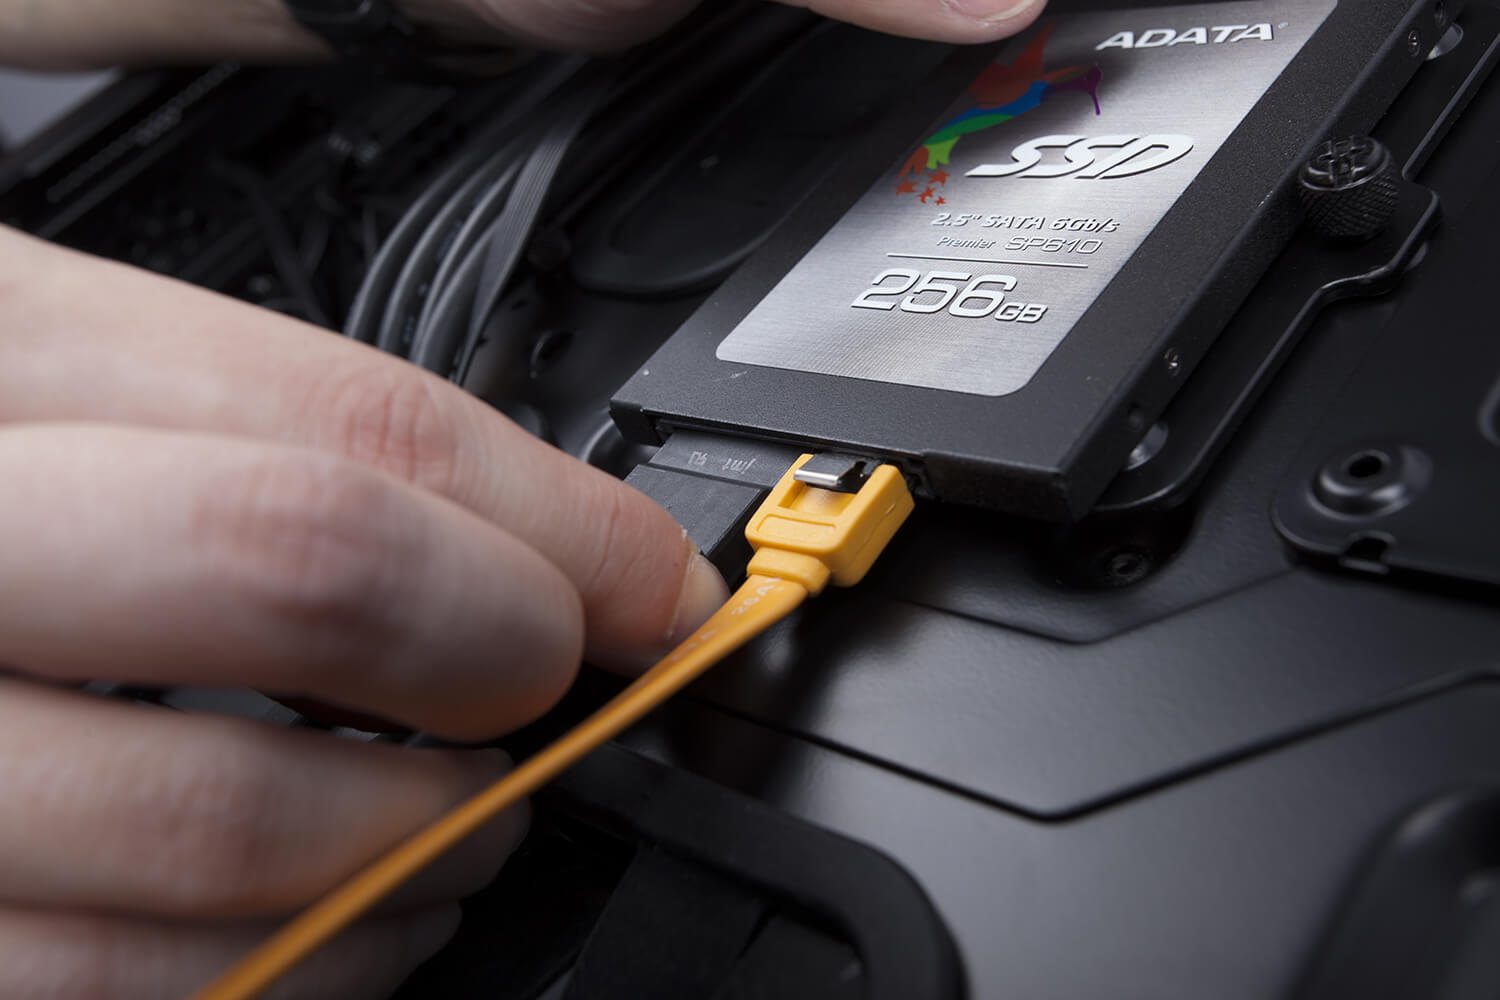 ssd_sata_data_cable_1011_0